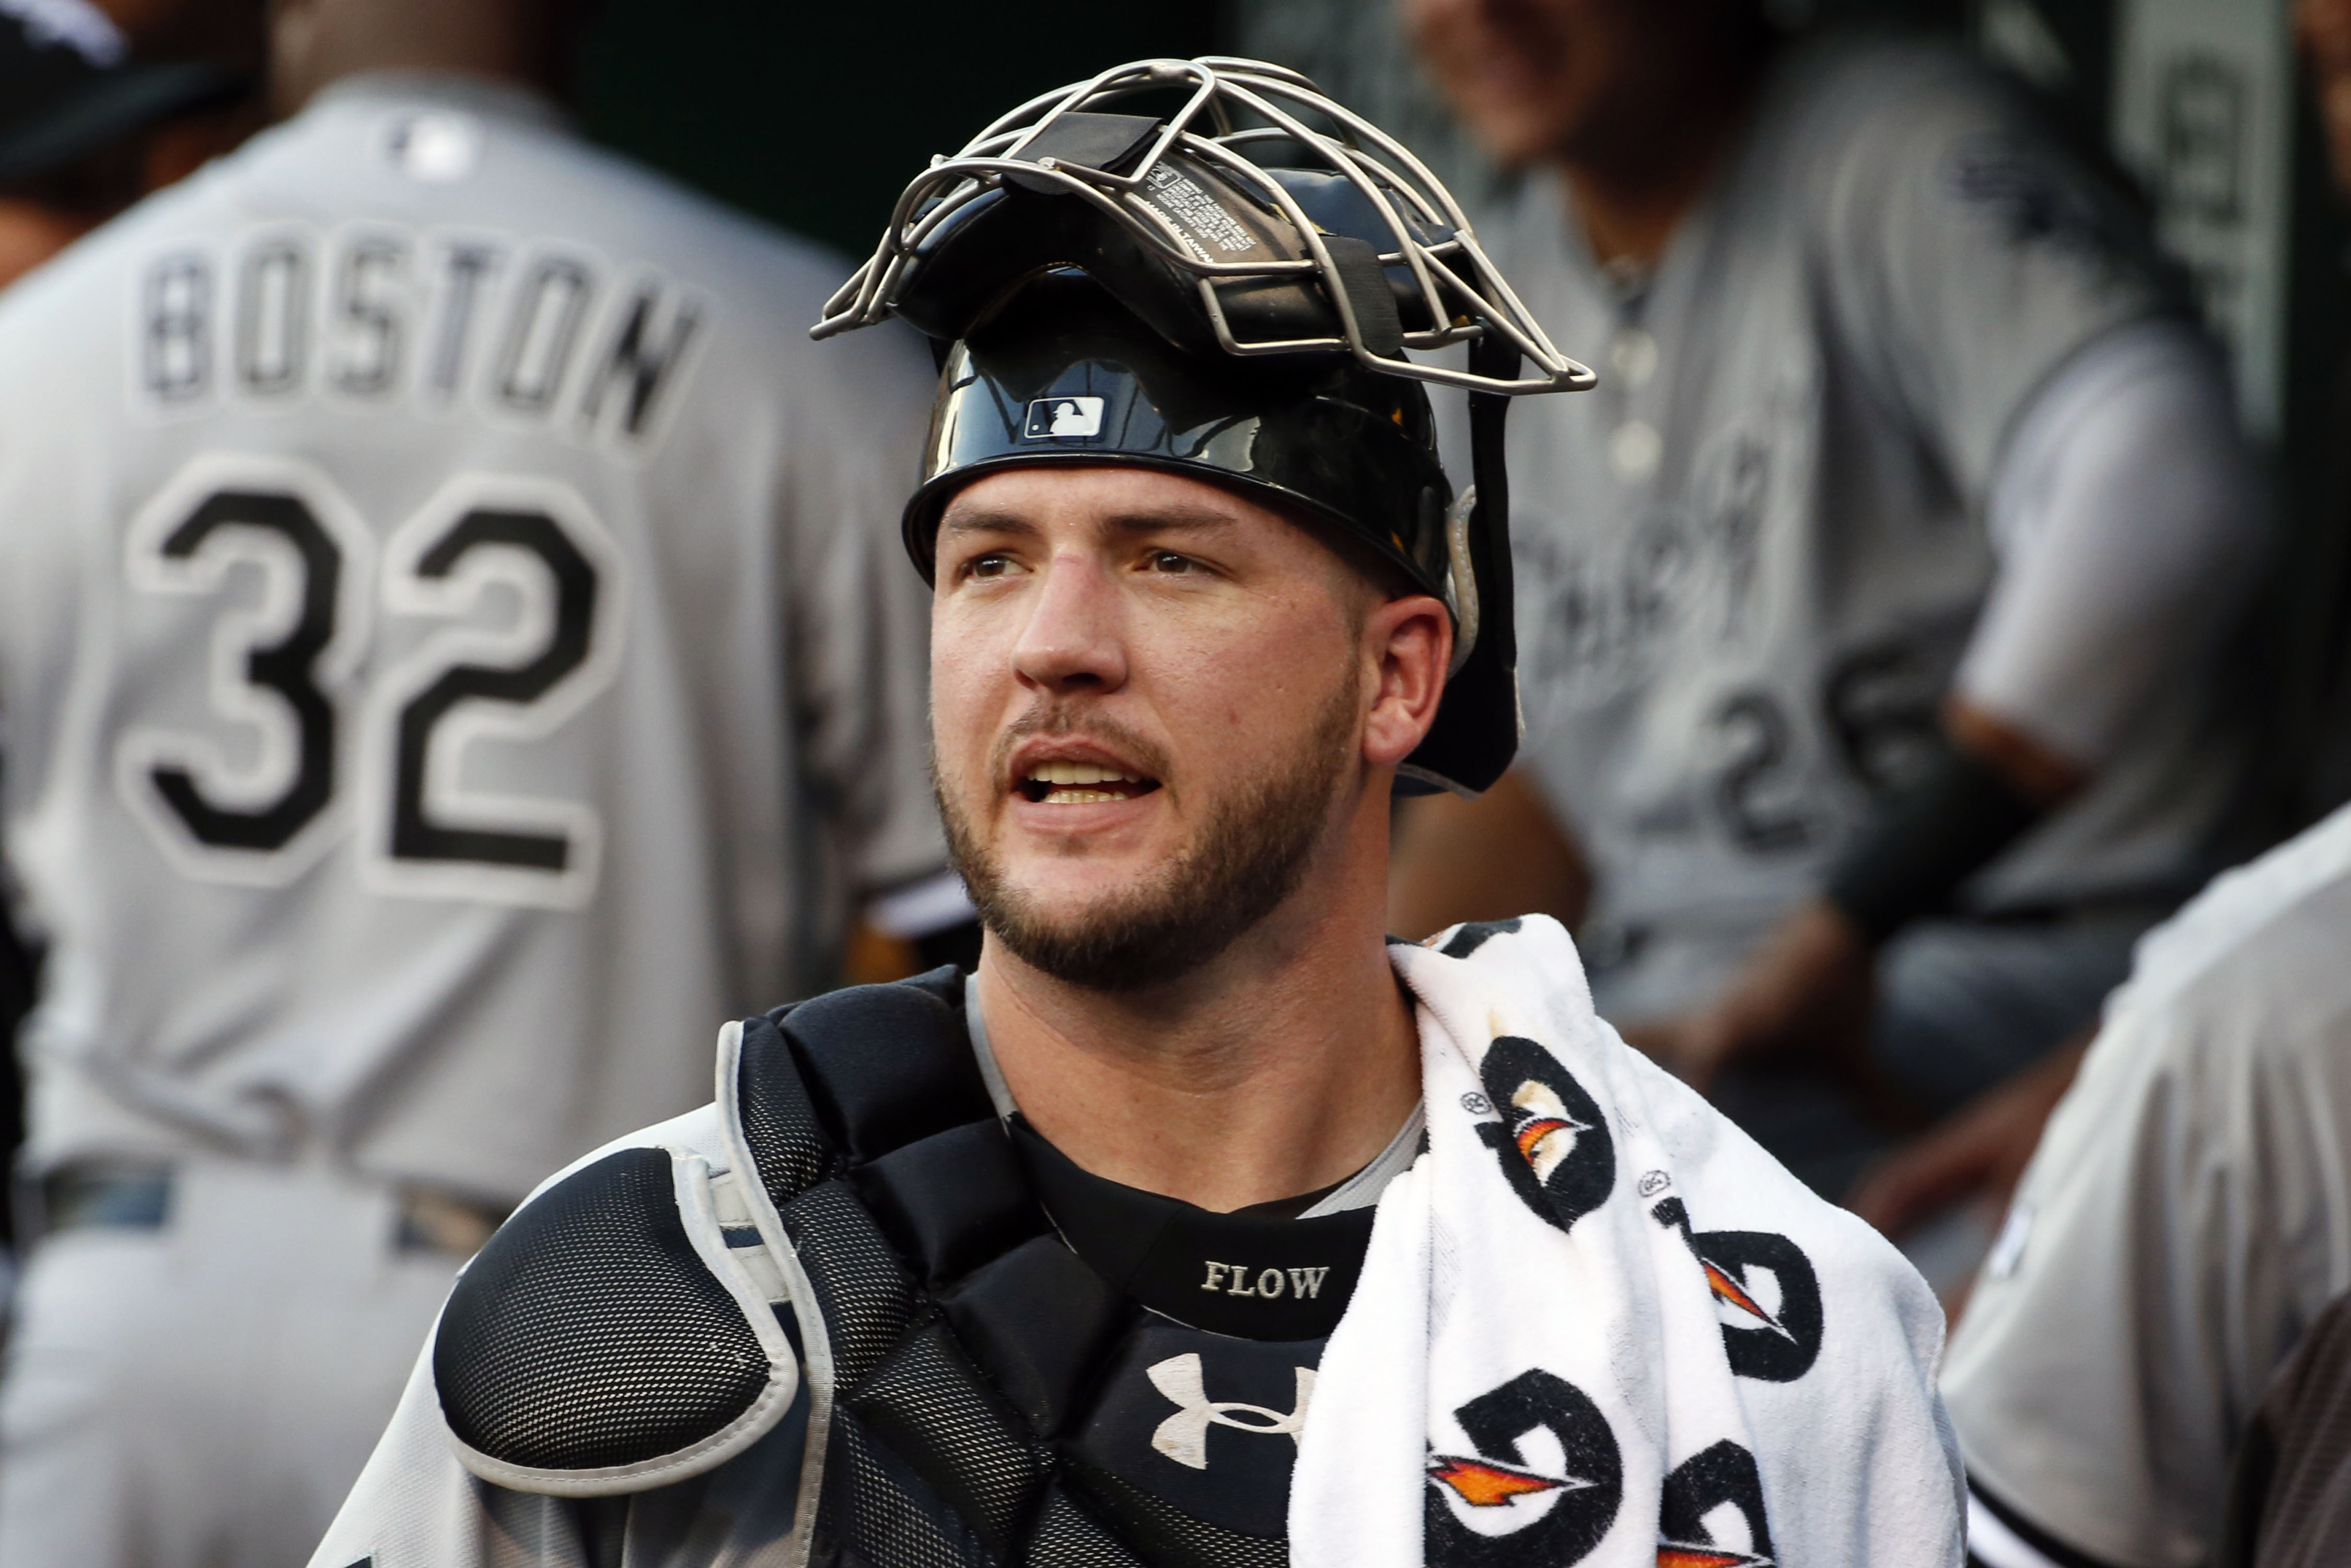 FILE - In this Monday, June 15, 2015 file photo, Chicago White Sox catcher Tyler Flowers walks through the dugout before a baseball game against the Pittsburgh Pirates in Pittsburgh. The Atlanta Braves have agreed to terms on a two-year, $5.3 million deal